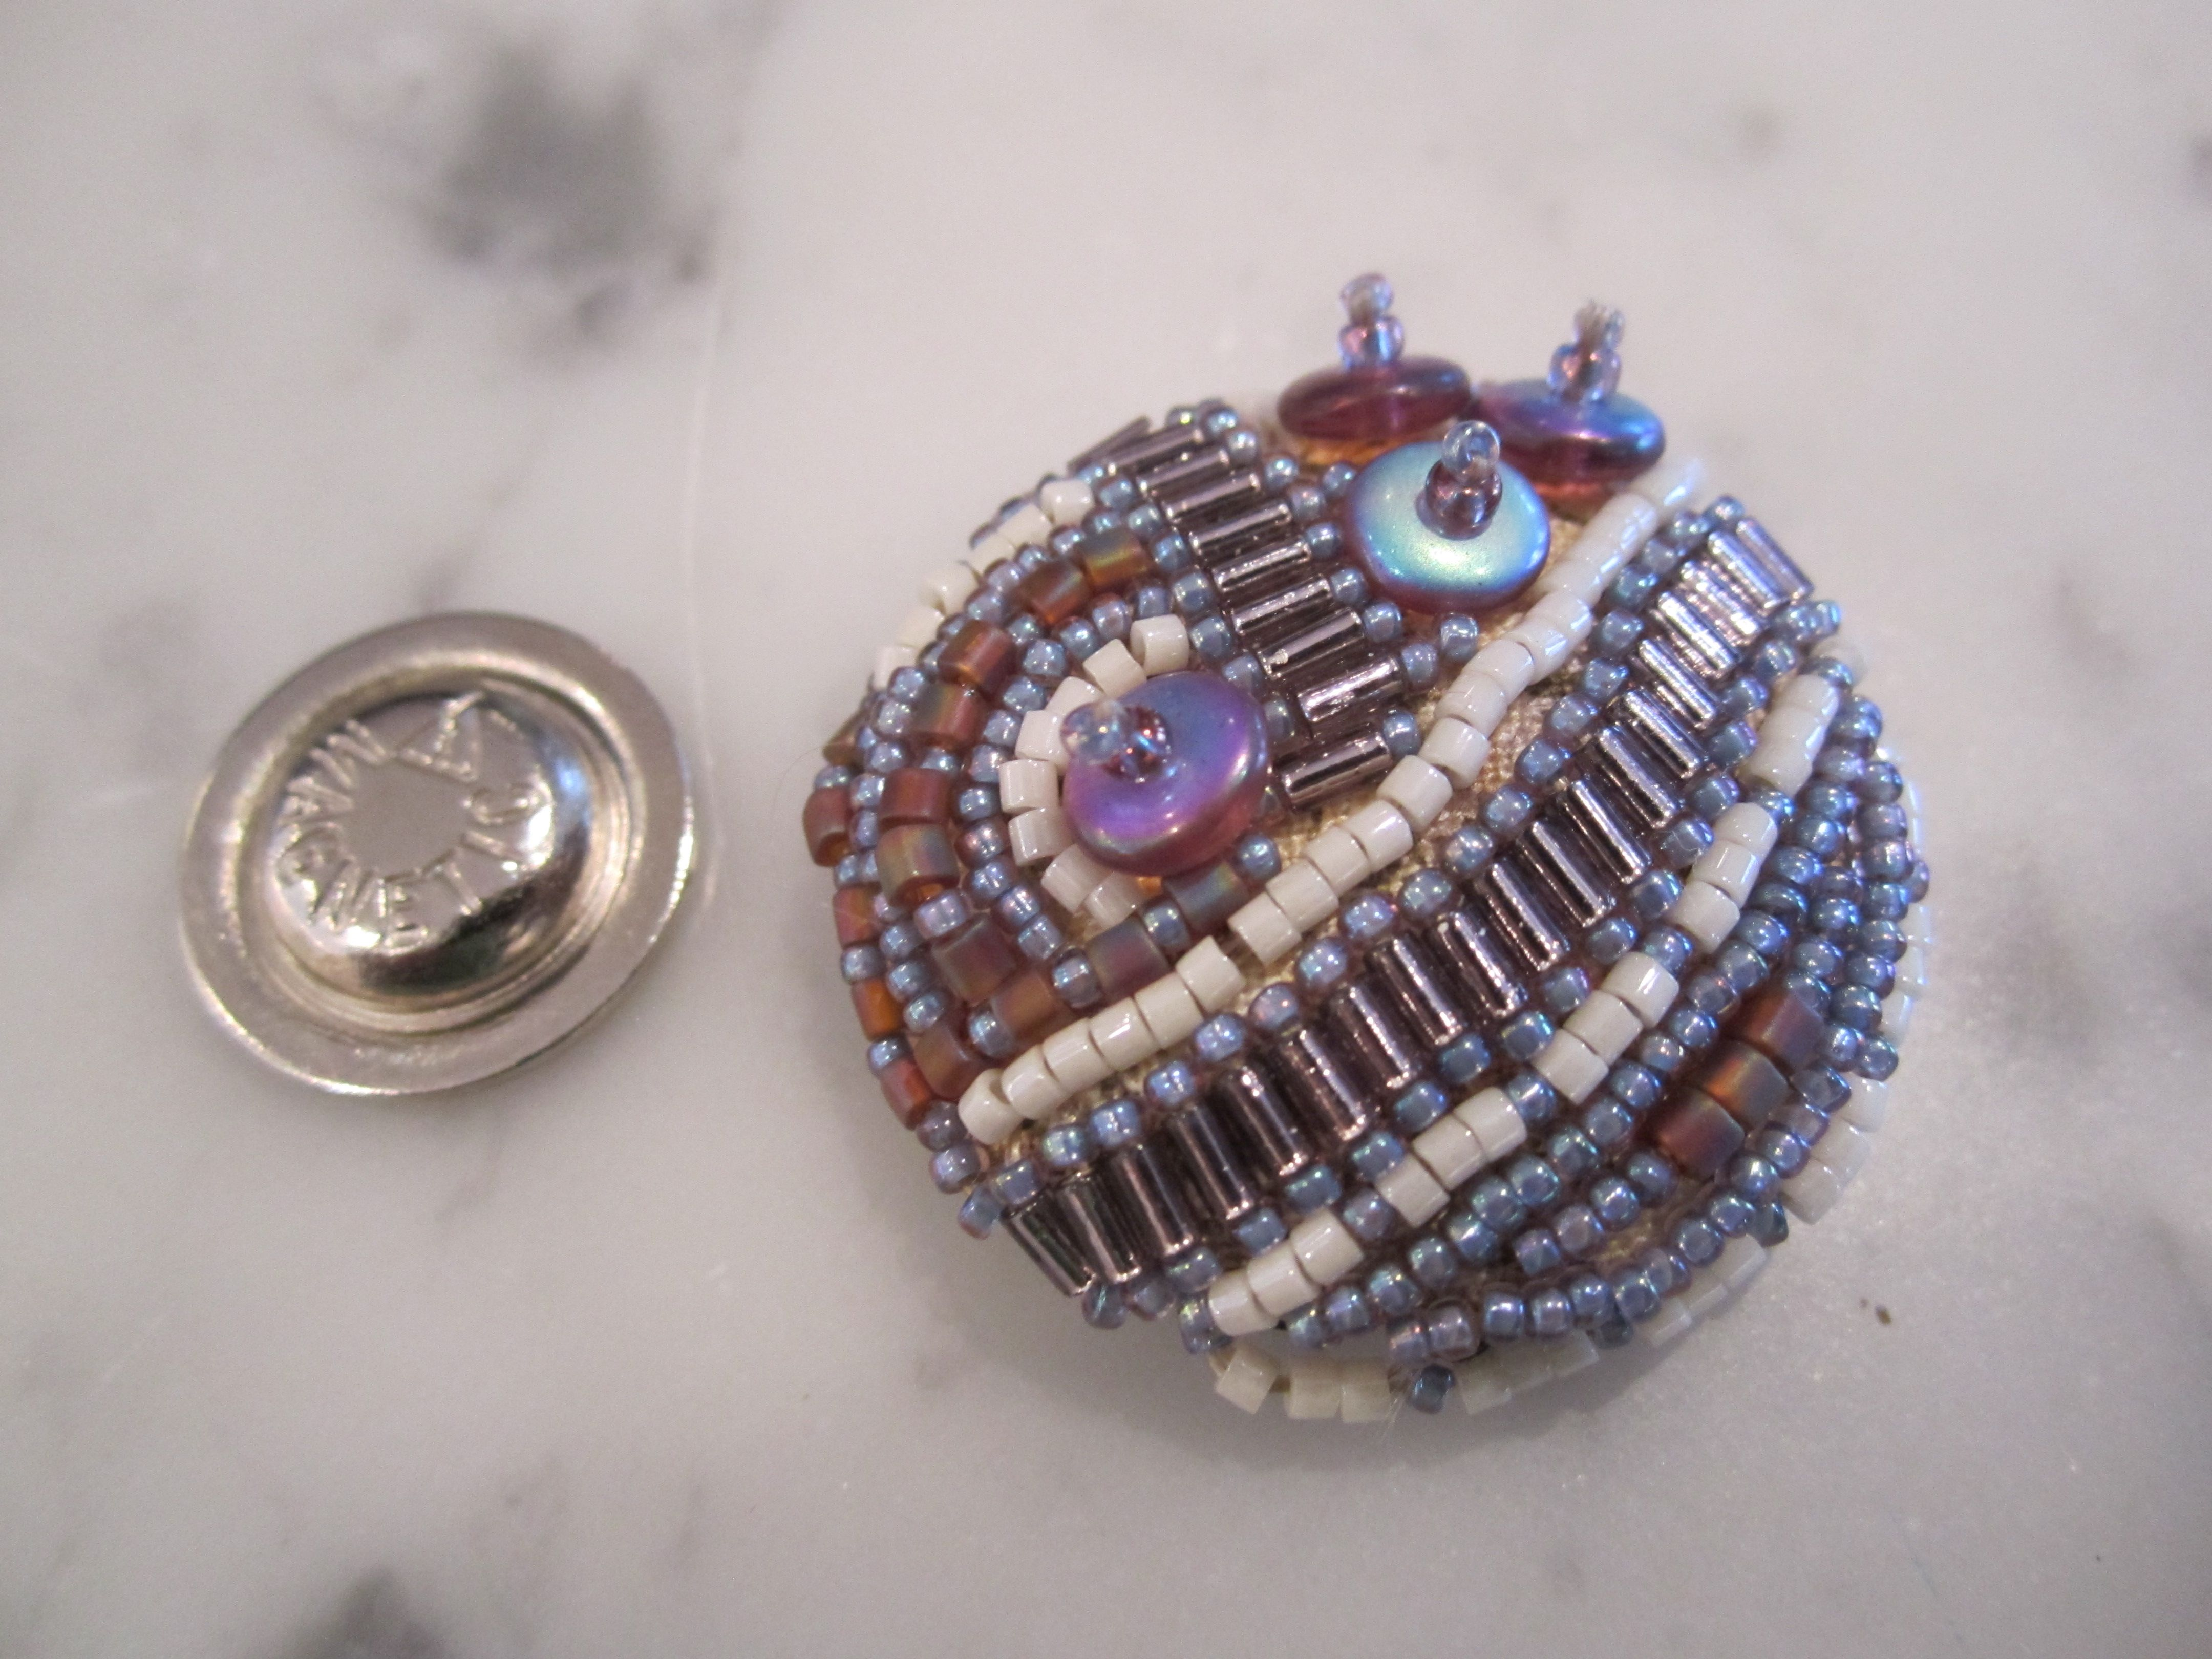 Beaded button - replaced shank with magnet so it won't make holes in clothes